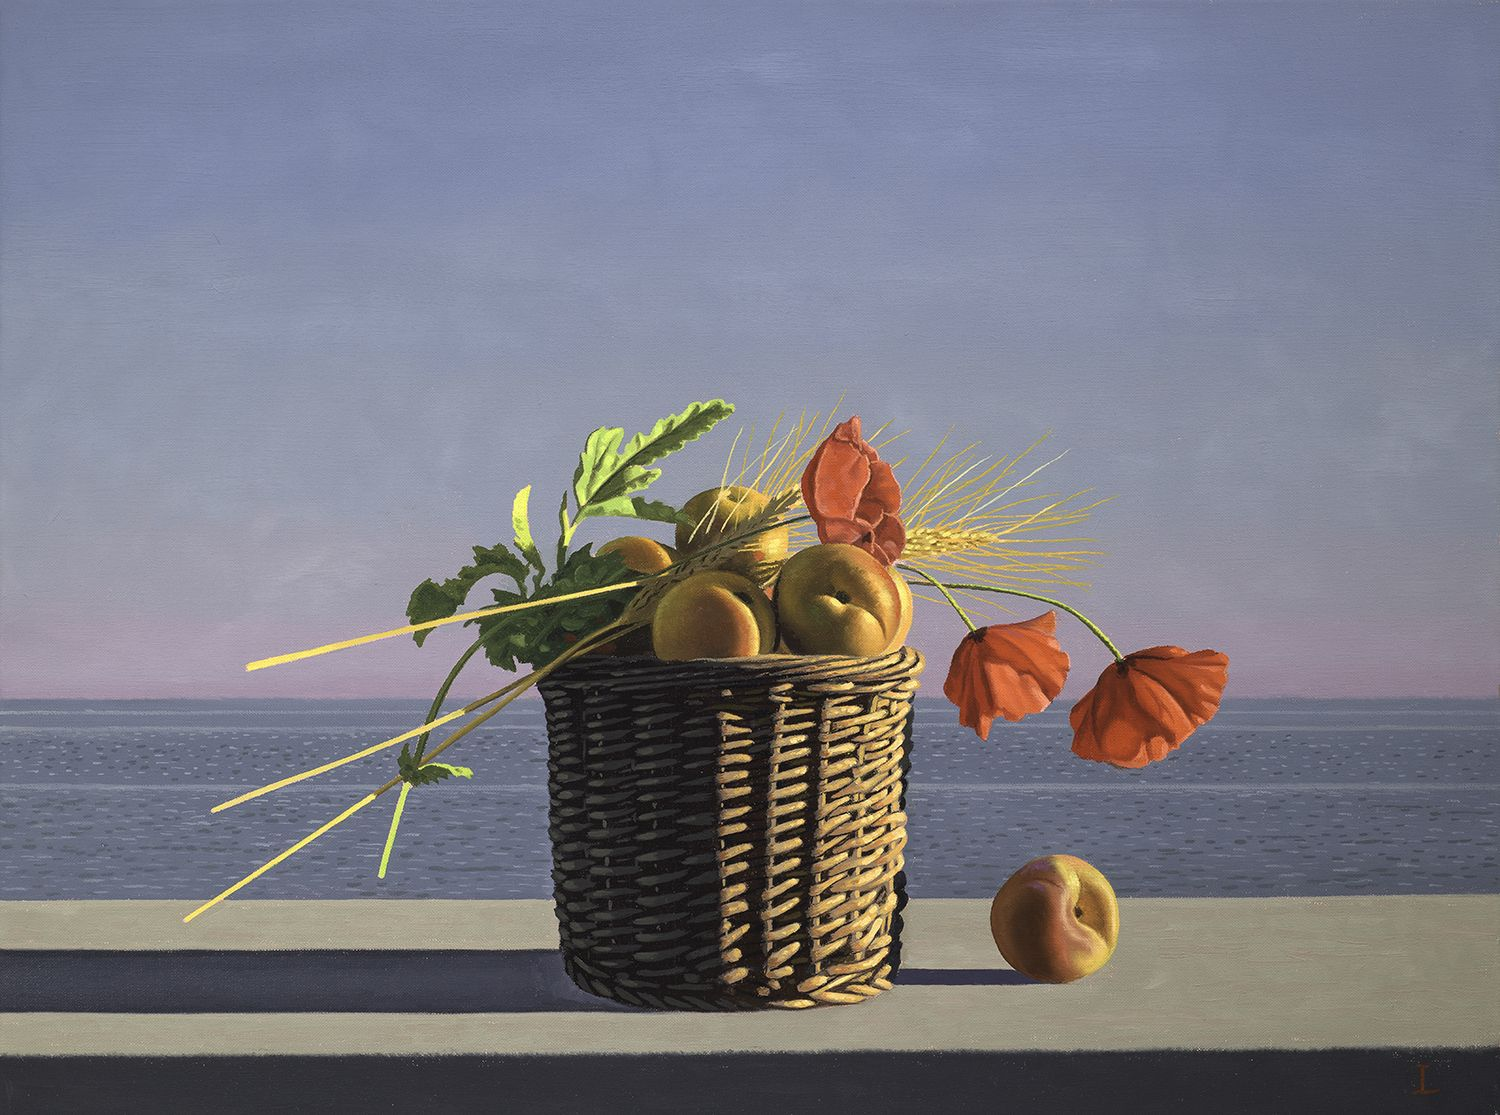 David Ligare (b. 1945), Still Life with Apricots, Wheat and Poppies (Offering), 2018